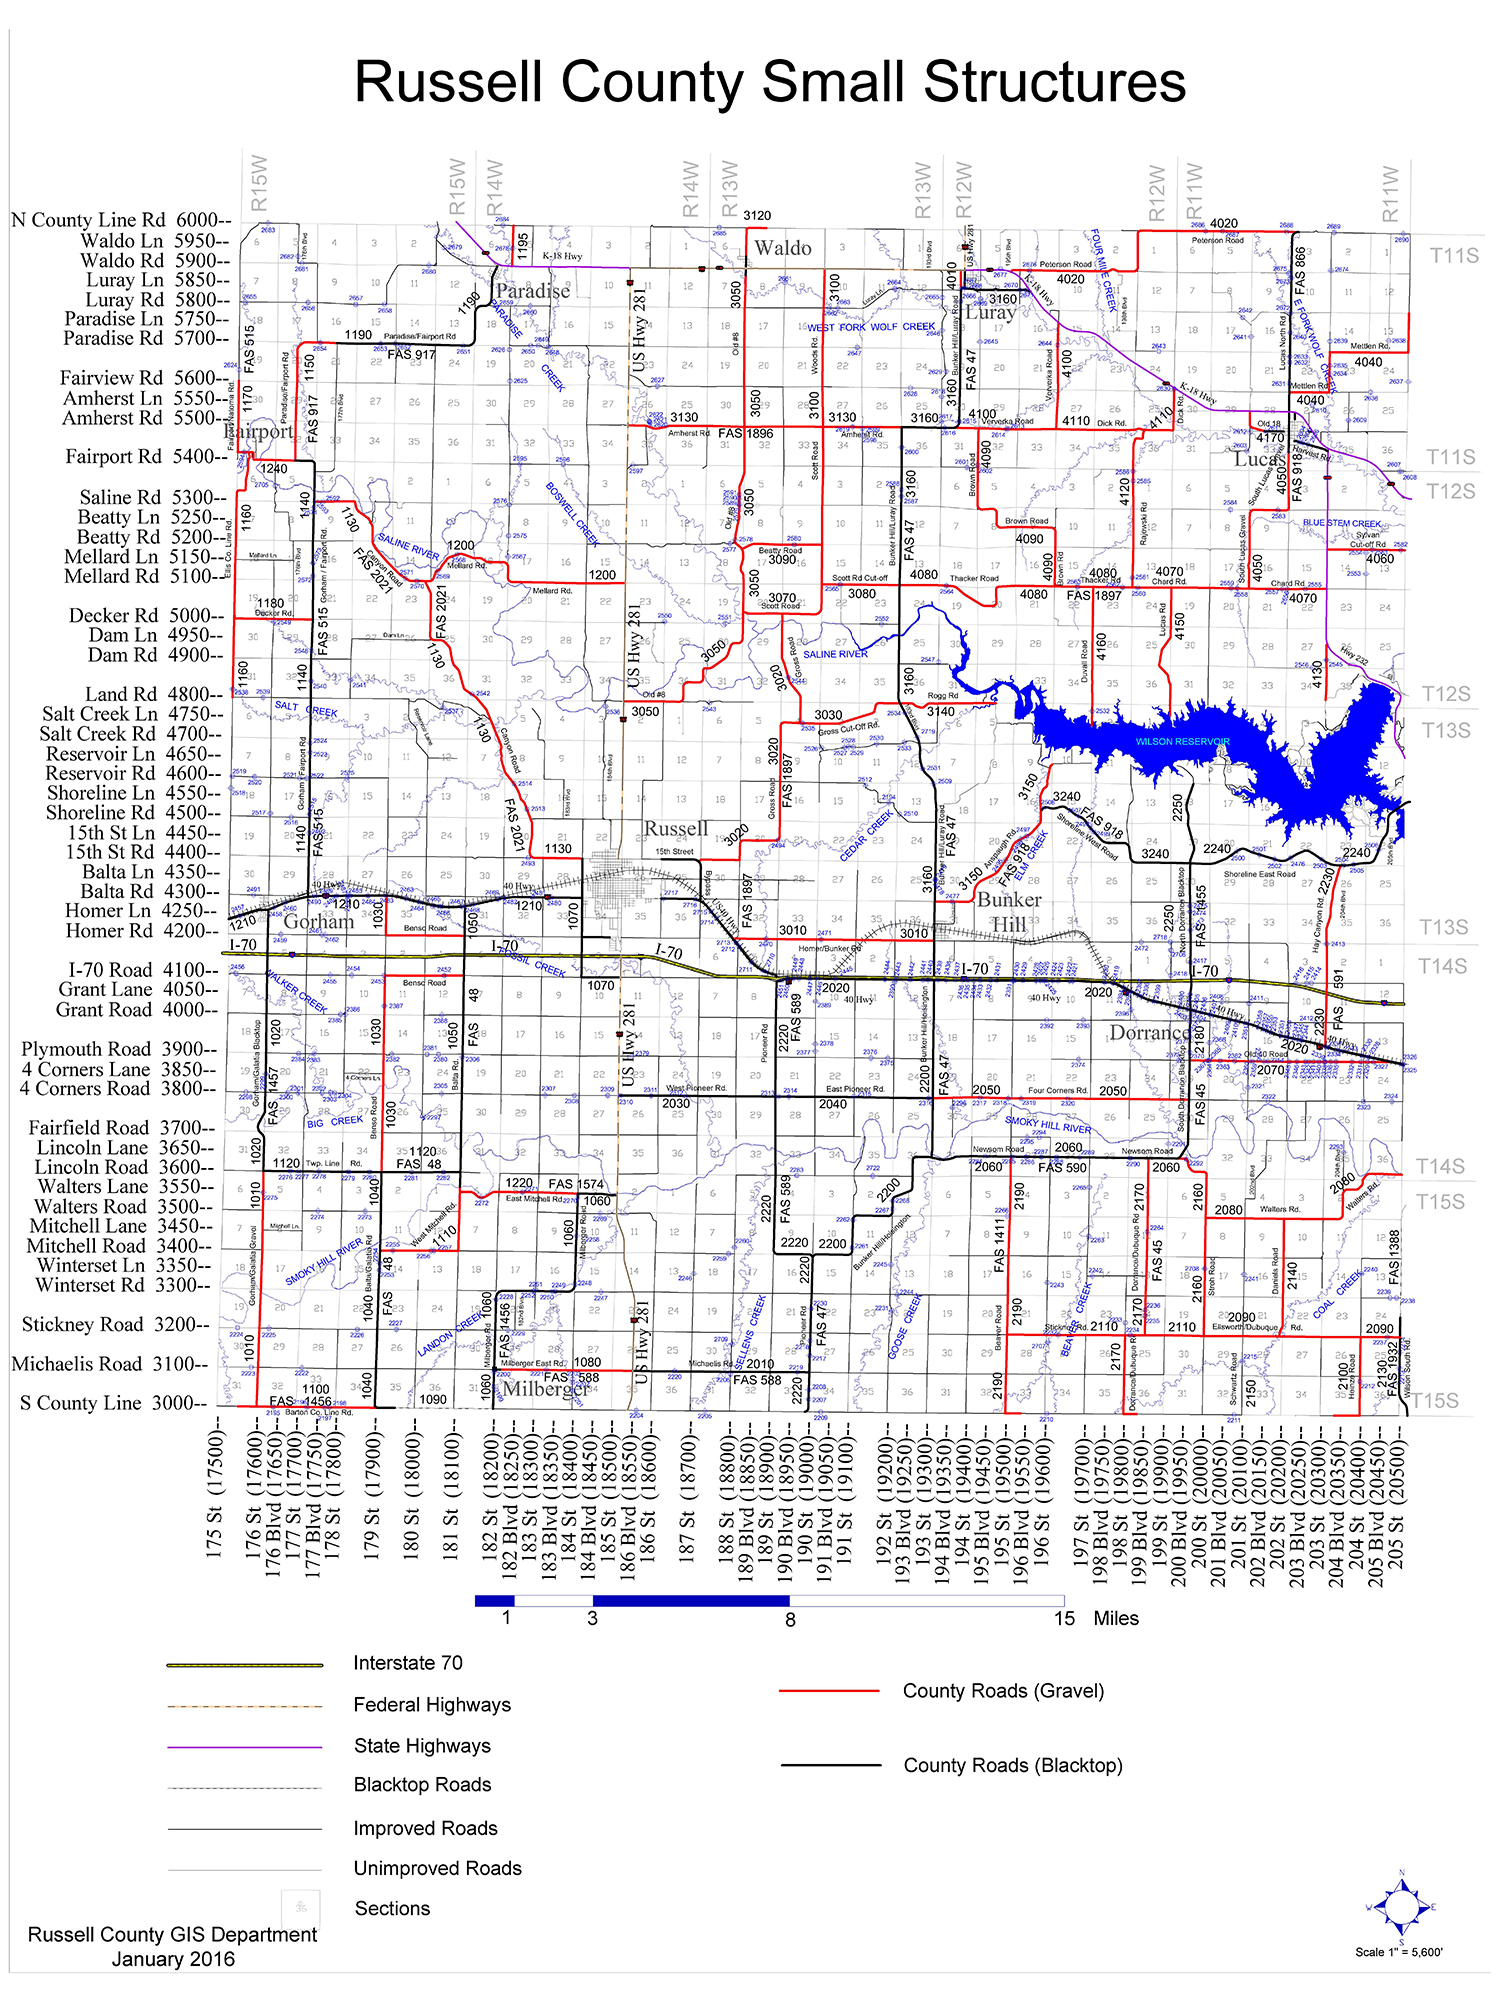 Russell County Small Structure Map